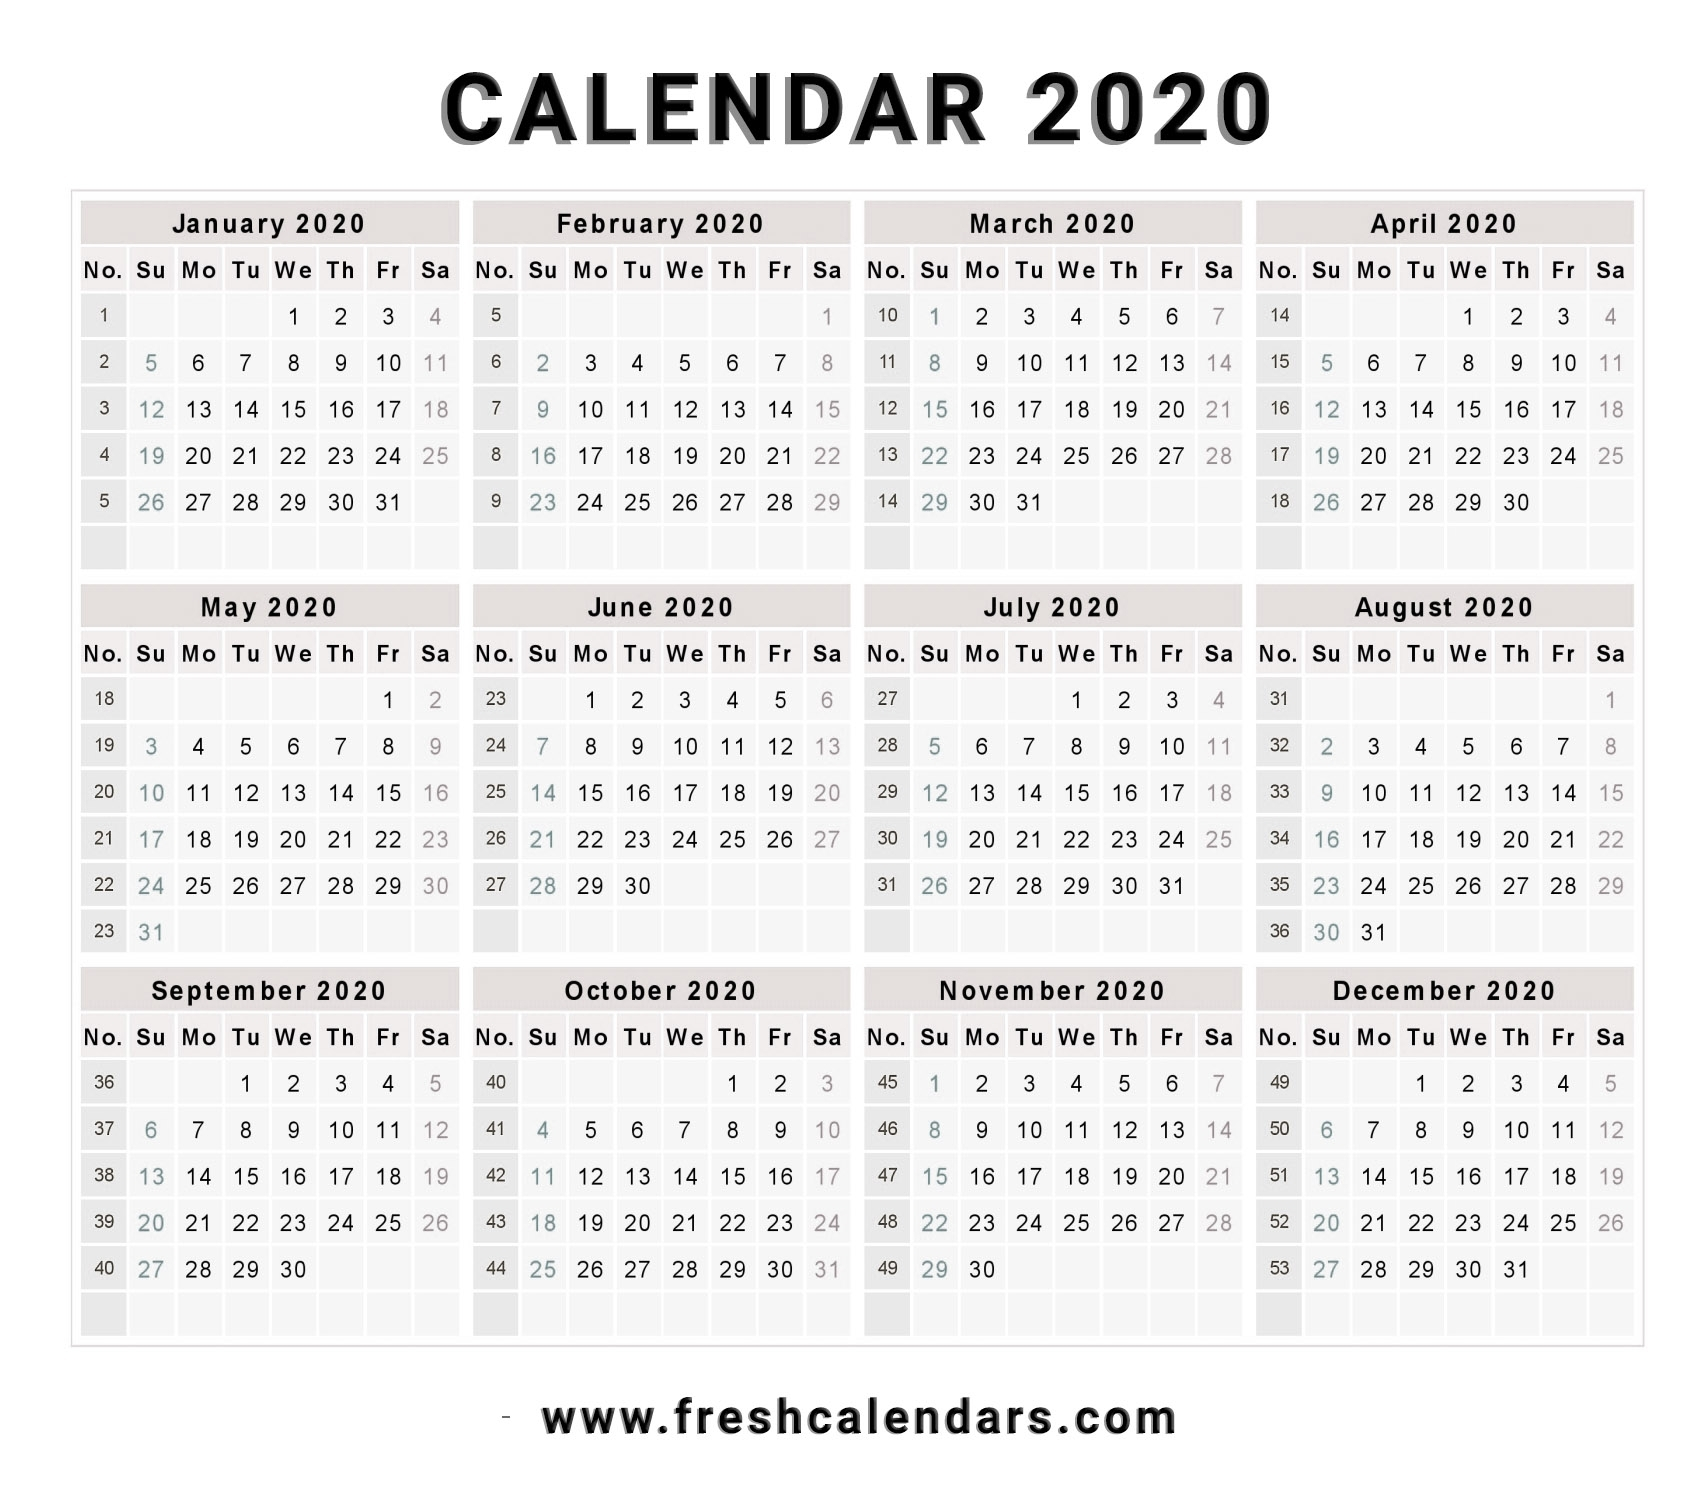 2020 Calendar intended for 2020 Year At A Glance Free Printable Calendar